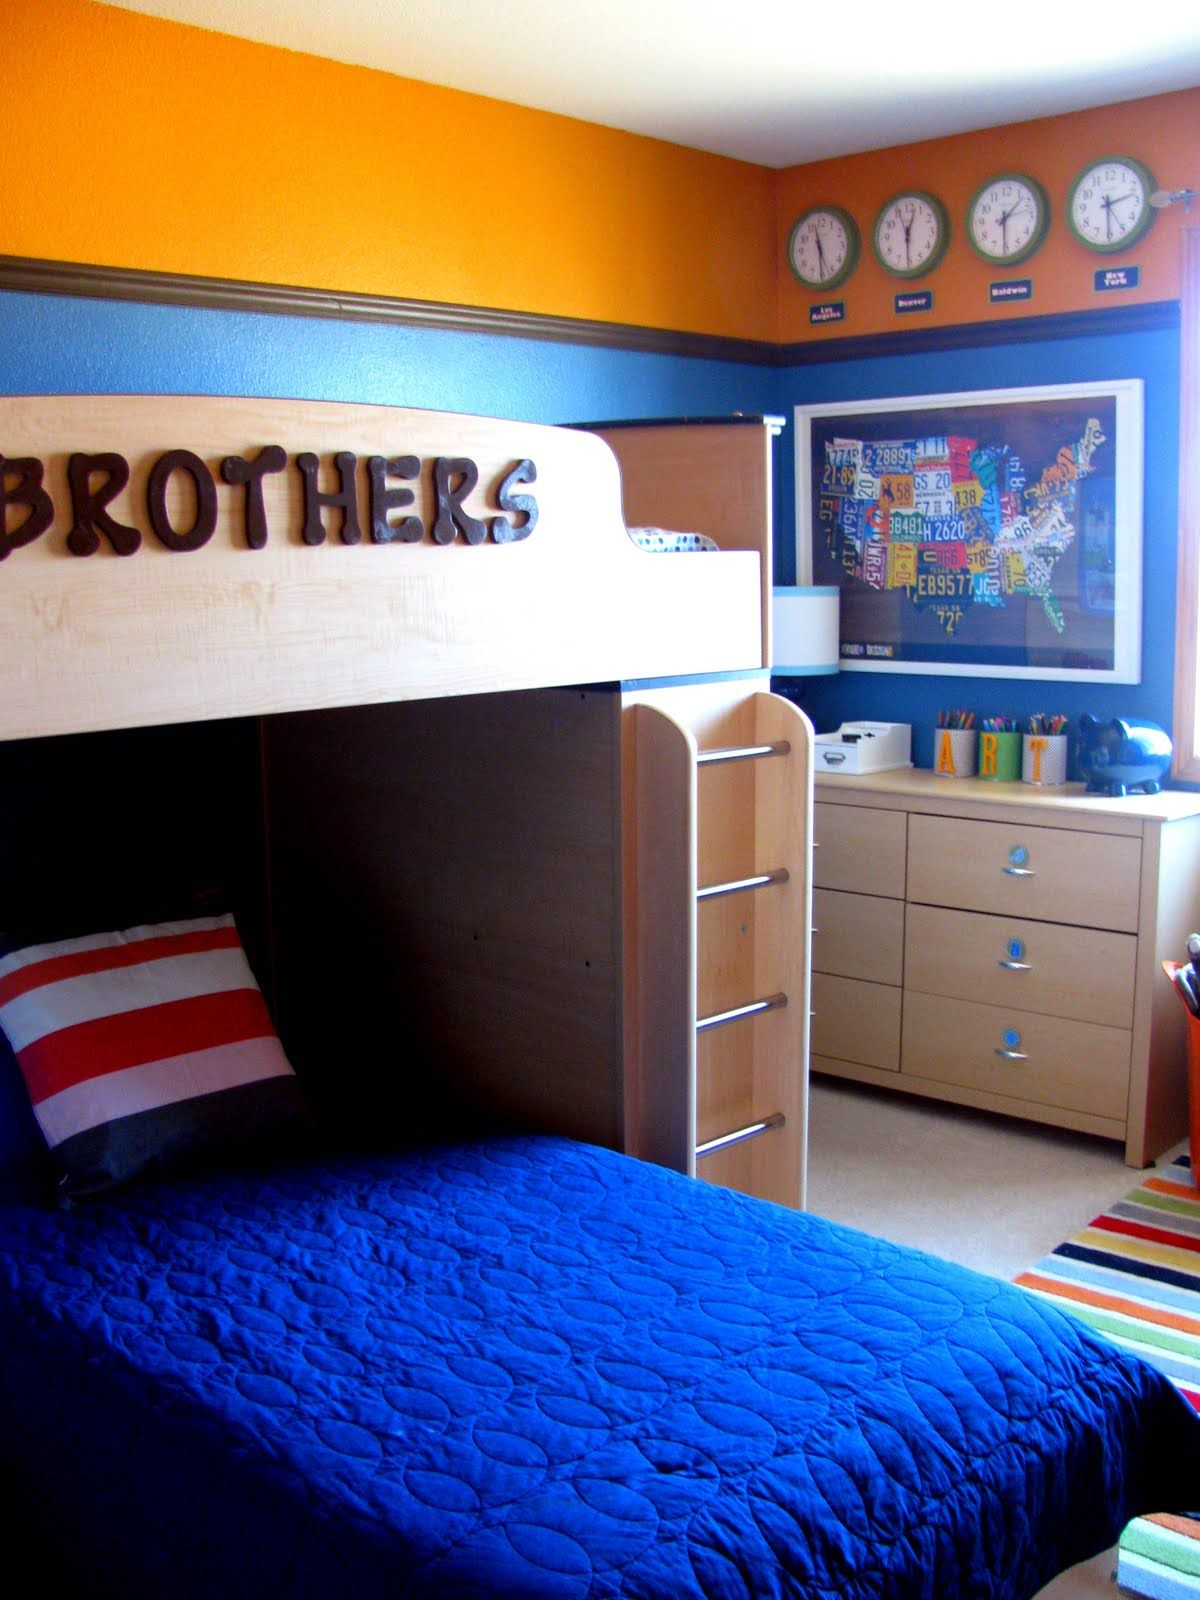 Boys Room Paint Ideas I Like The Way The Bed Says Brothers Very Cute  Home Sweet Home